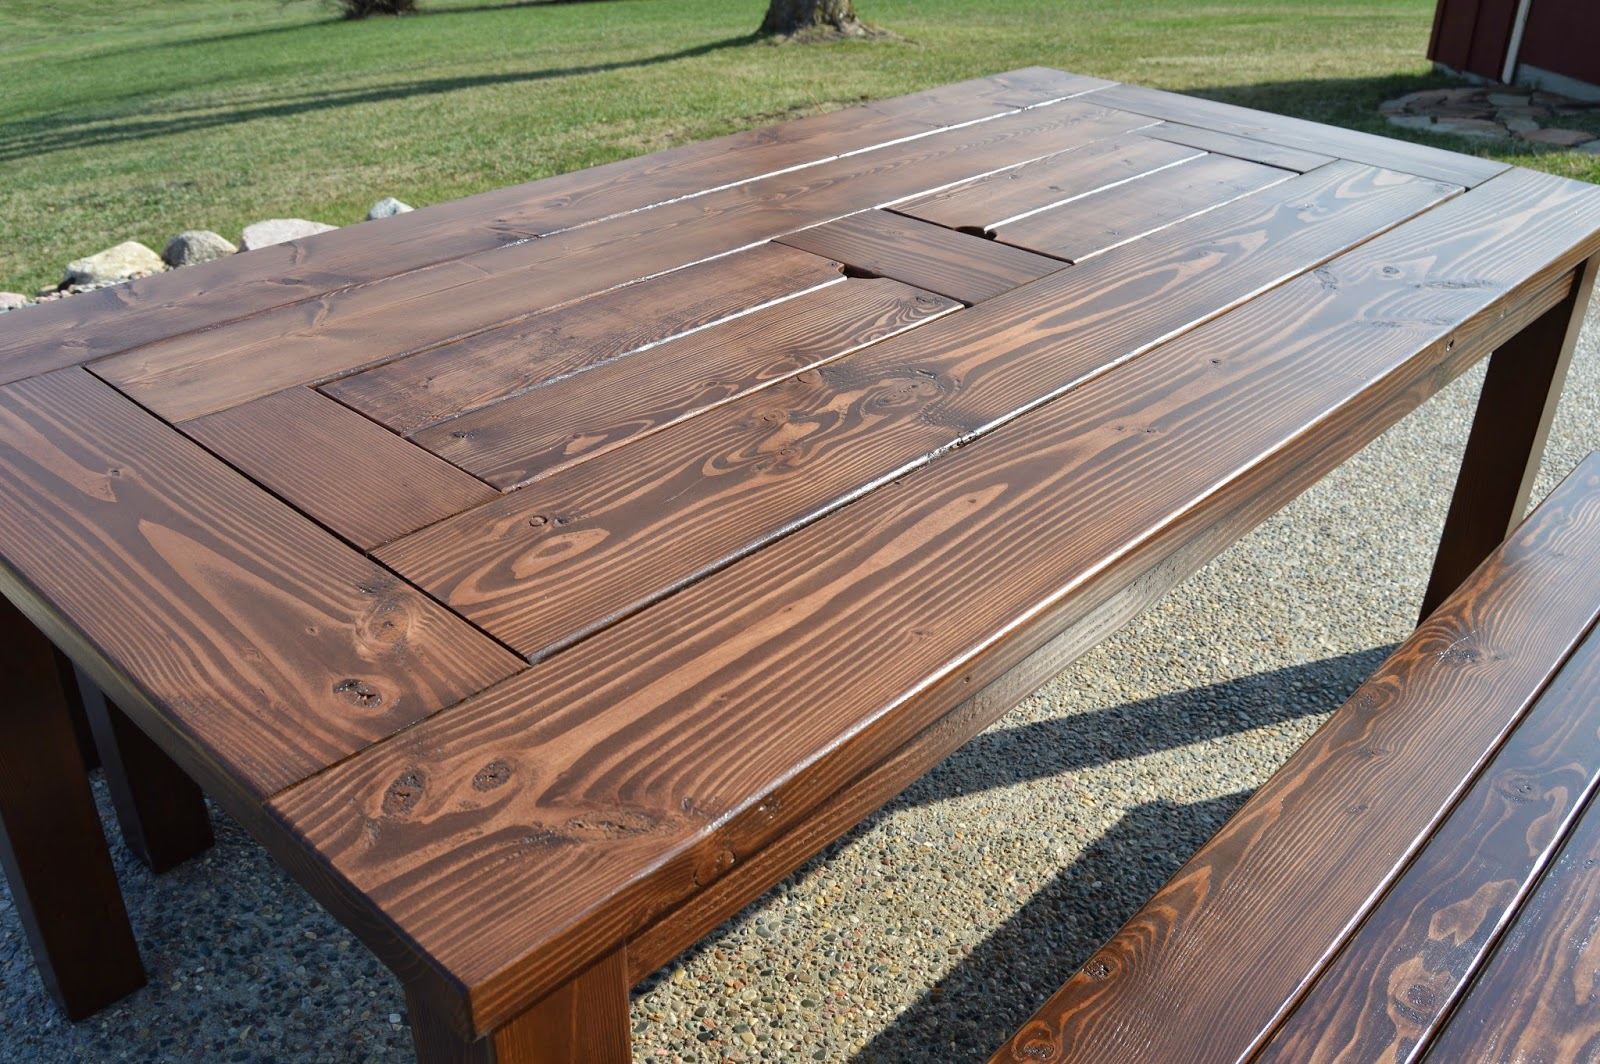 Backyard Table Plans : patio table with ice boxes, Kruses Workshop on Remodelaholic